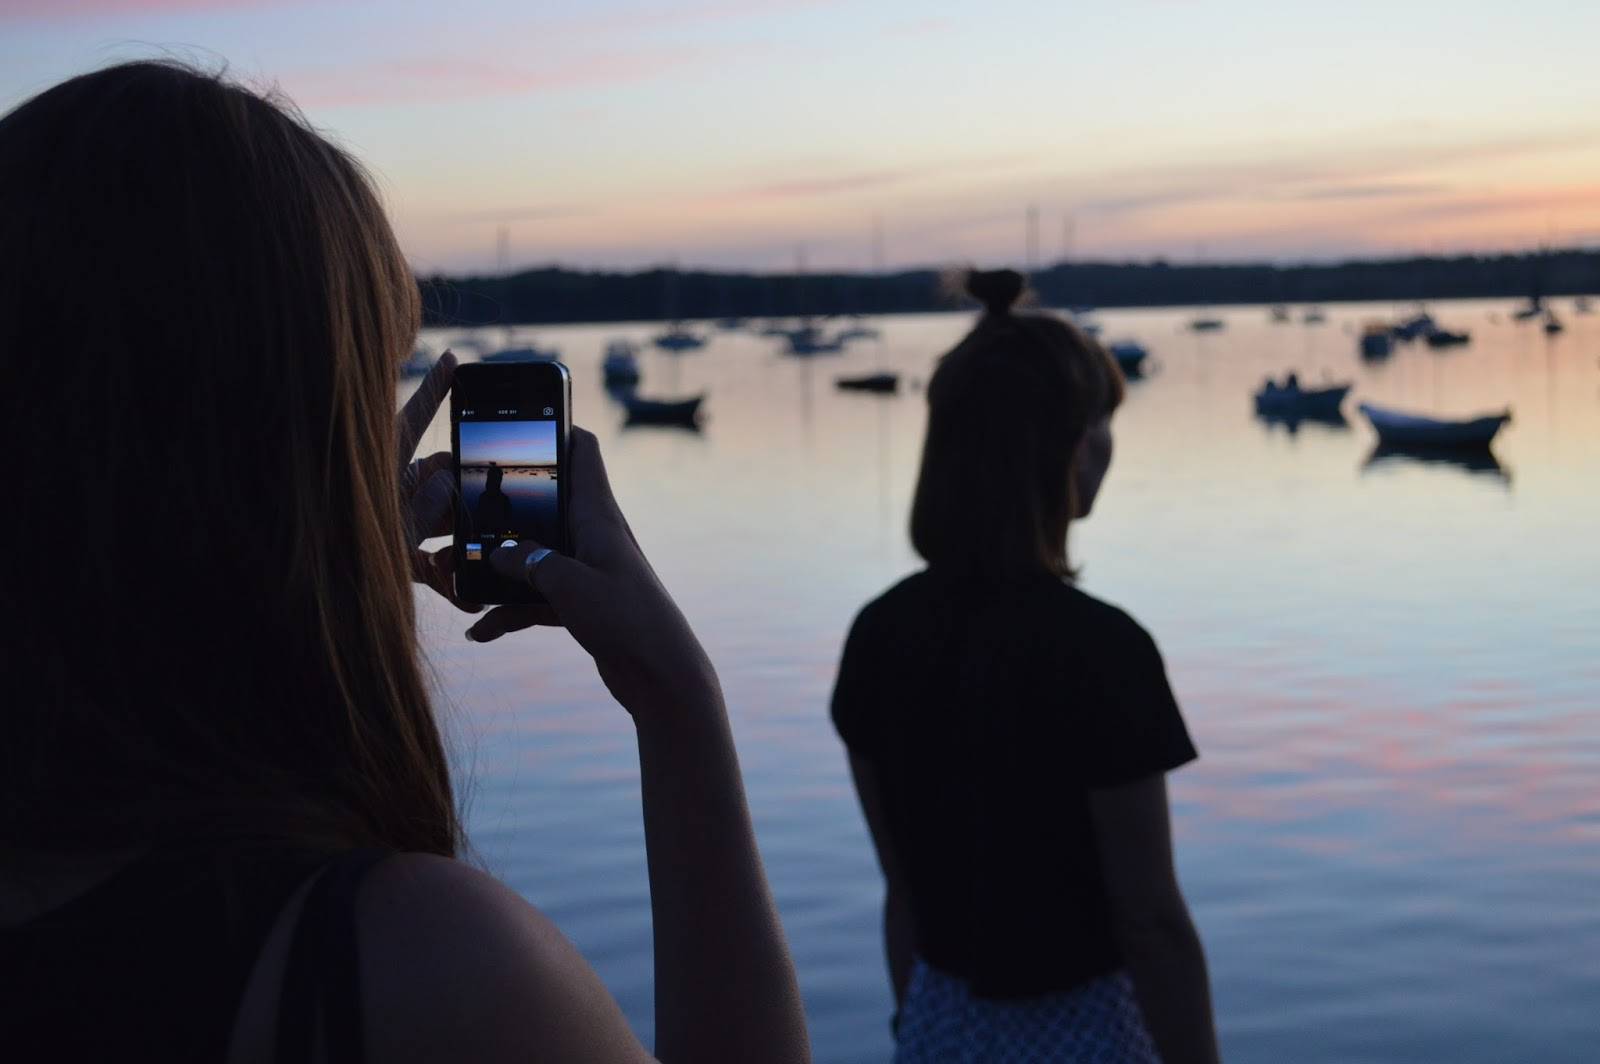 Instagram photography at Saint Suliac harbour in Brittany, France